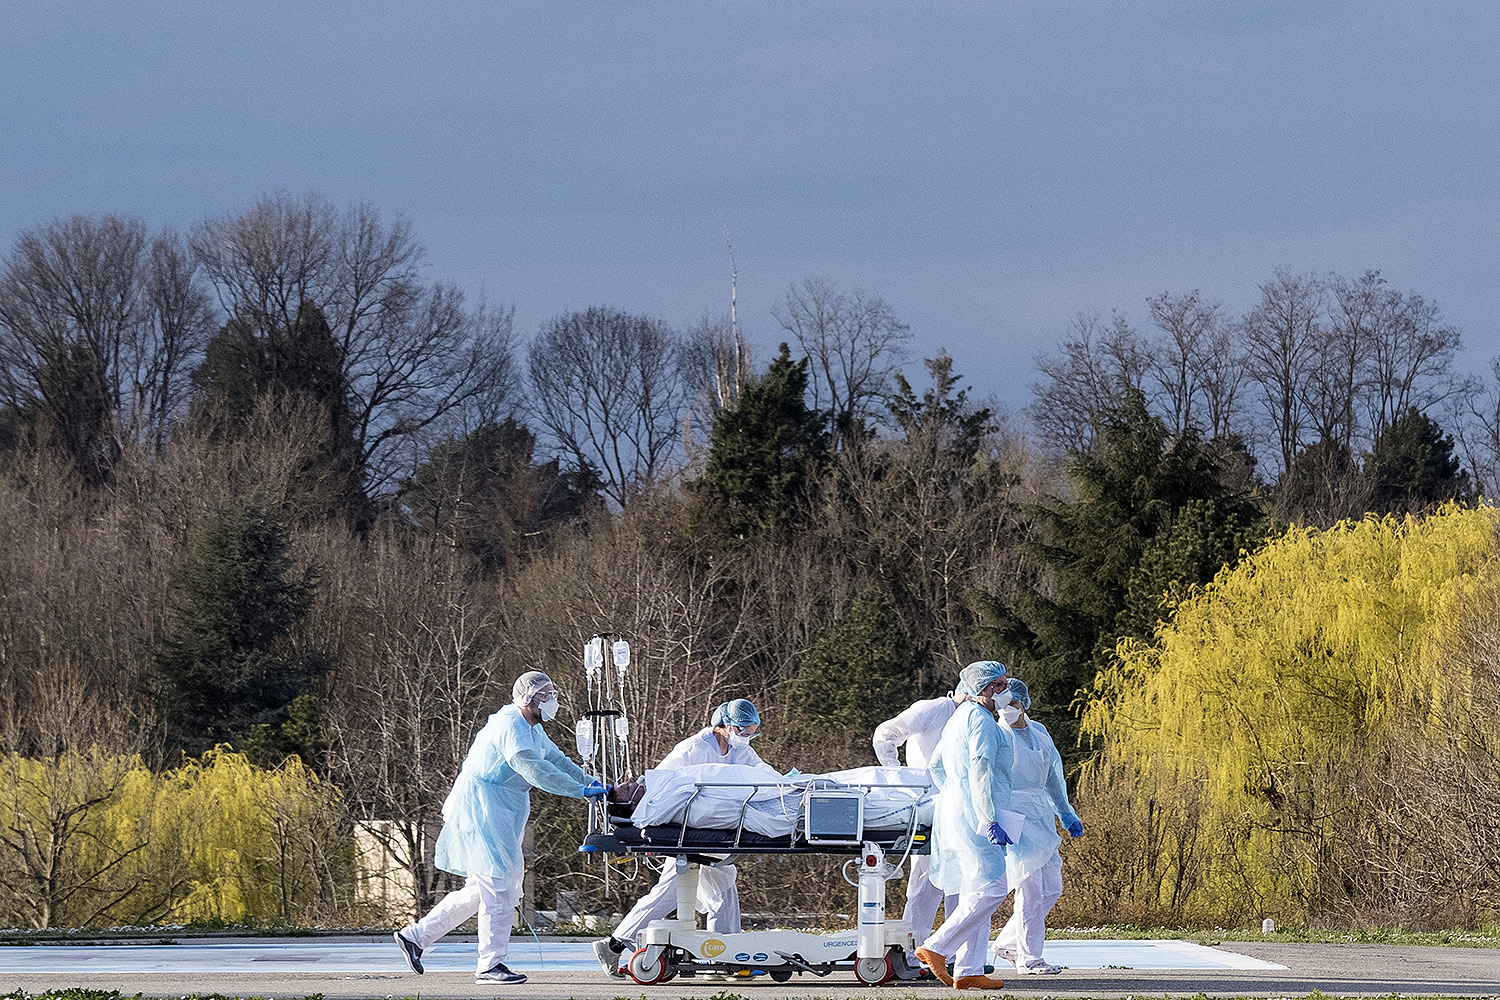 Medical staff push a patient on a gurney to a waiting helicopter at the Emile Muller hospital in Mulhouse, eastern France, on March 17. The patient was being evacuated to another hospital as the coronavirus spread. SEBASTIEN BOZON/AFP via Getty Images